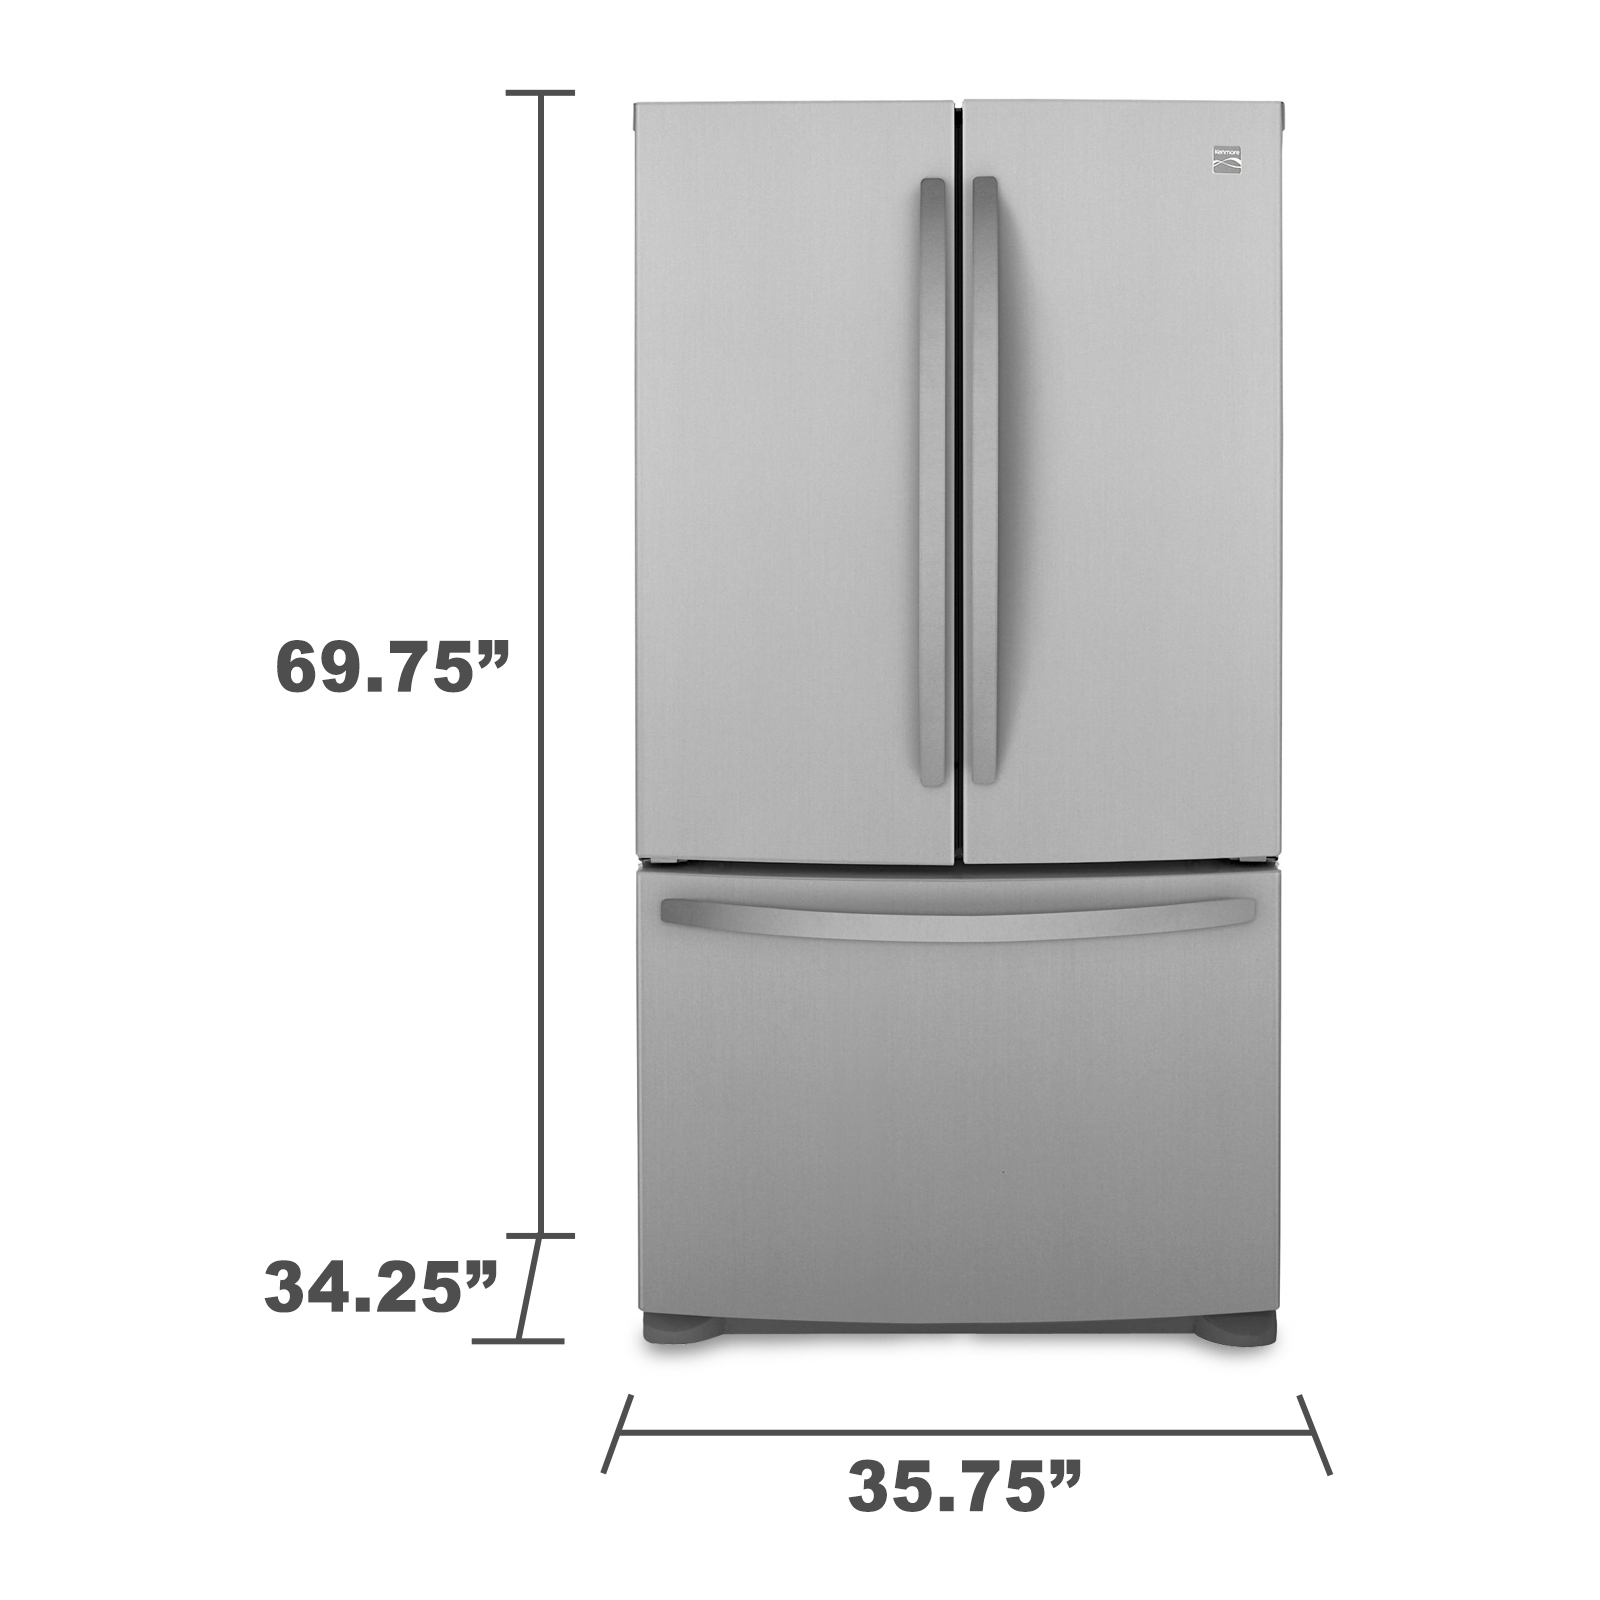 Kenmore 25.4 cu. ft. French Door Bottom-Freezer Refrigerator - Stainless Steel